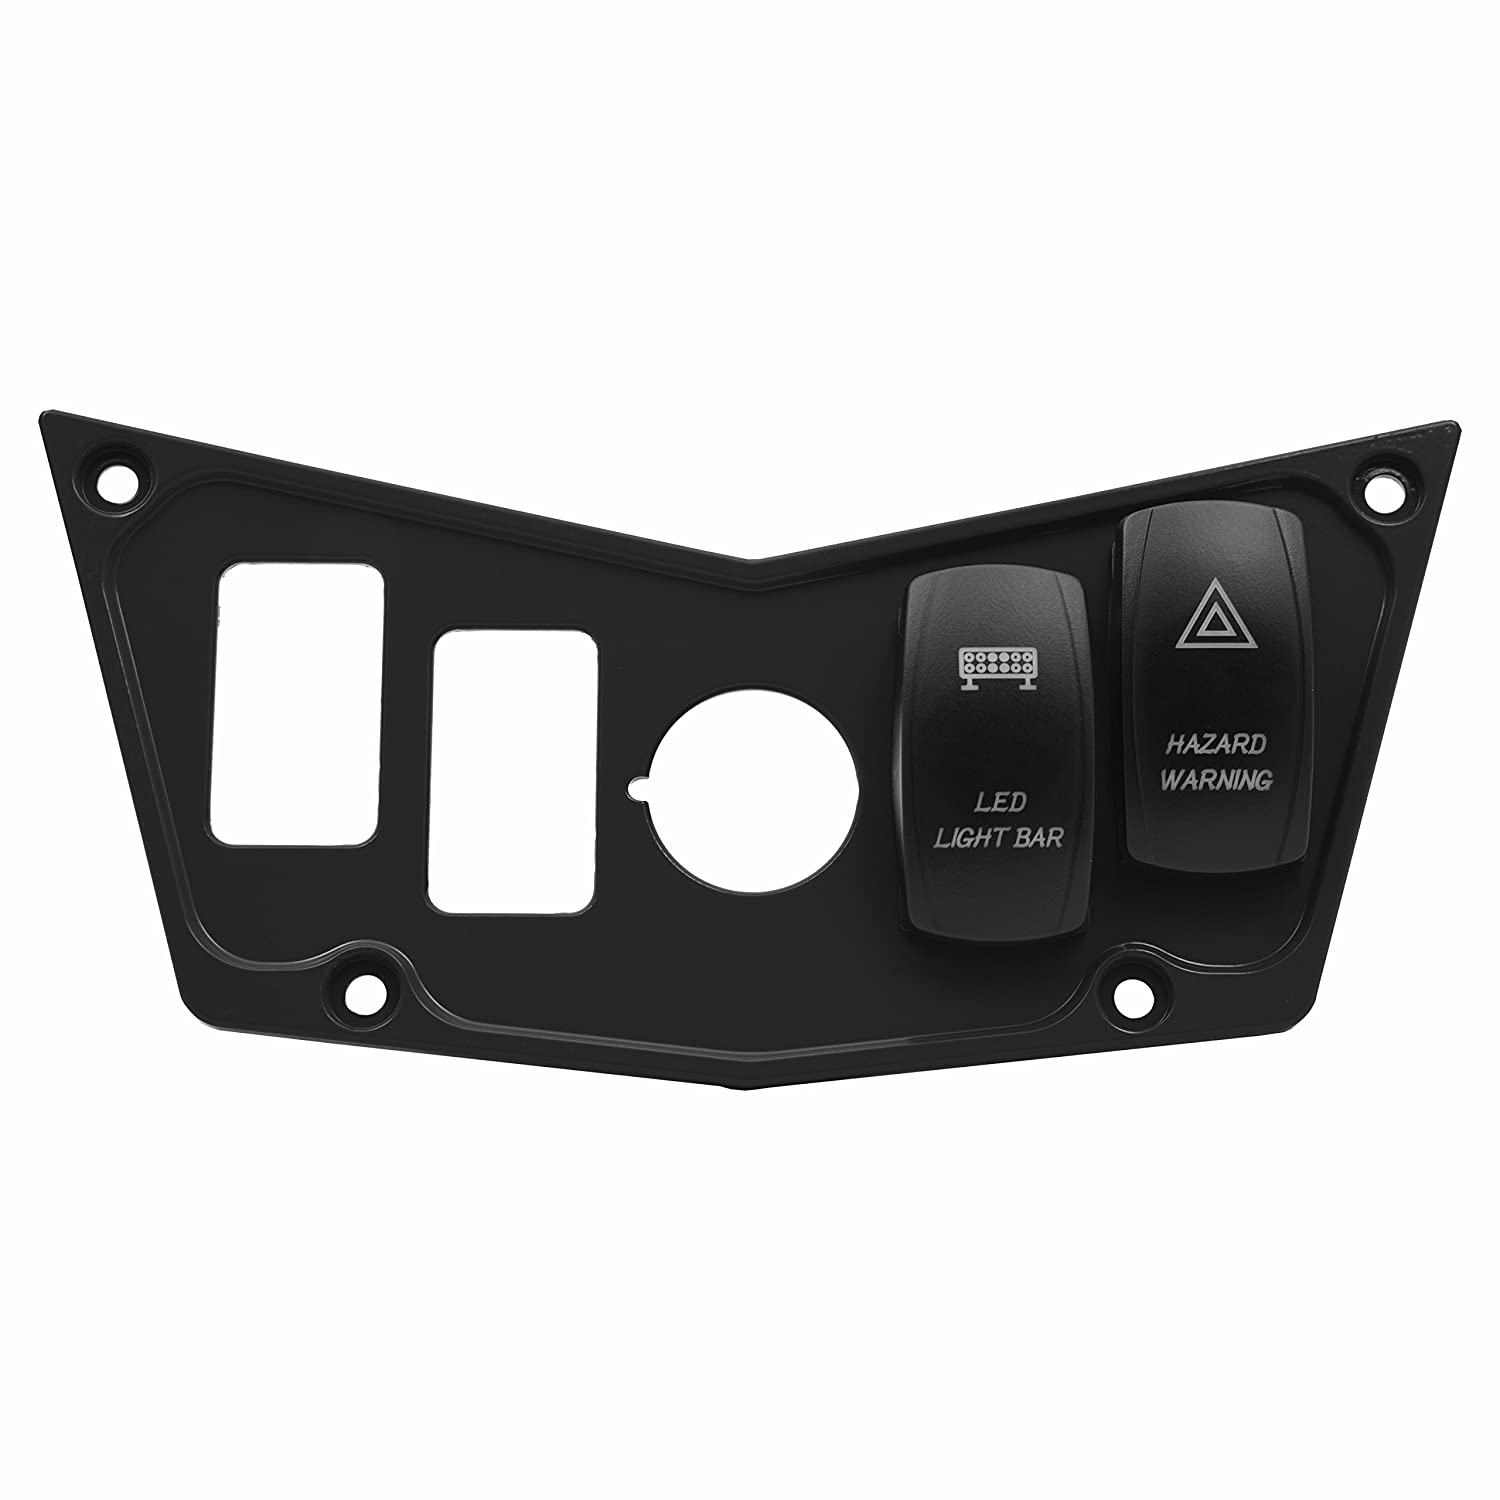 STV Motorsports Custom Aluminum Black Dash Panel for 2008-2014 Polaris RZR XP 900, 800, S, 570, Jagged X with 2 Free Laser Rocker Switches STVMotorsports®